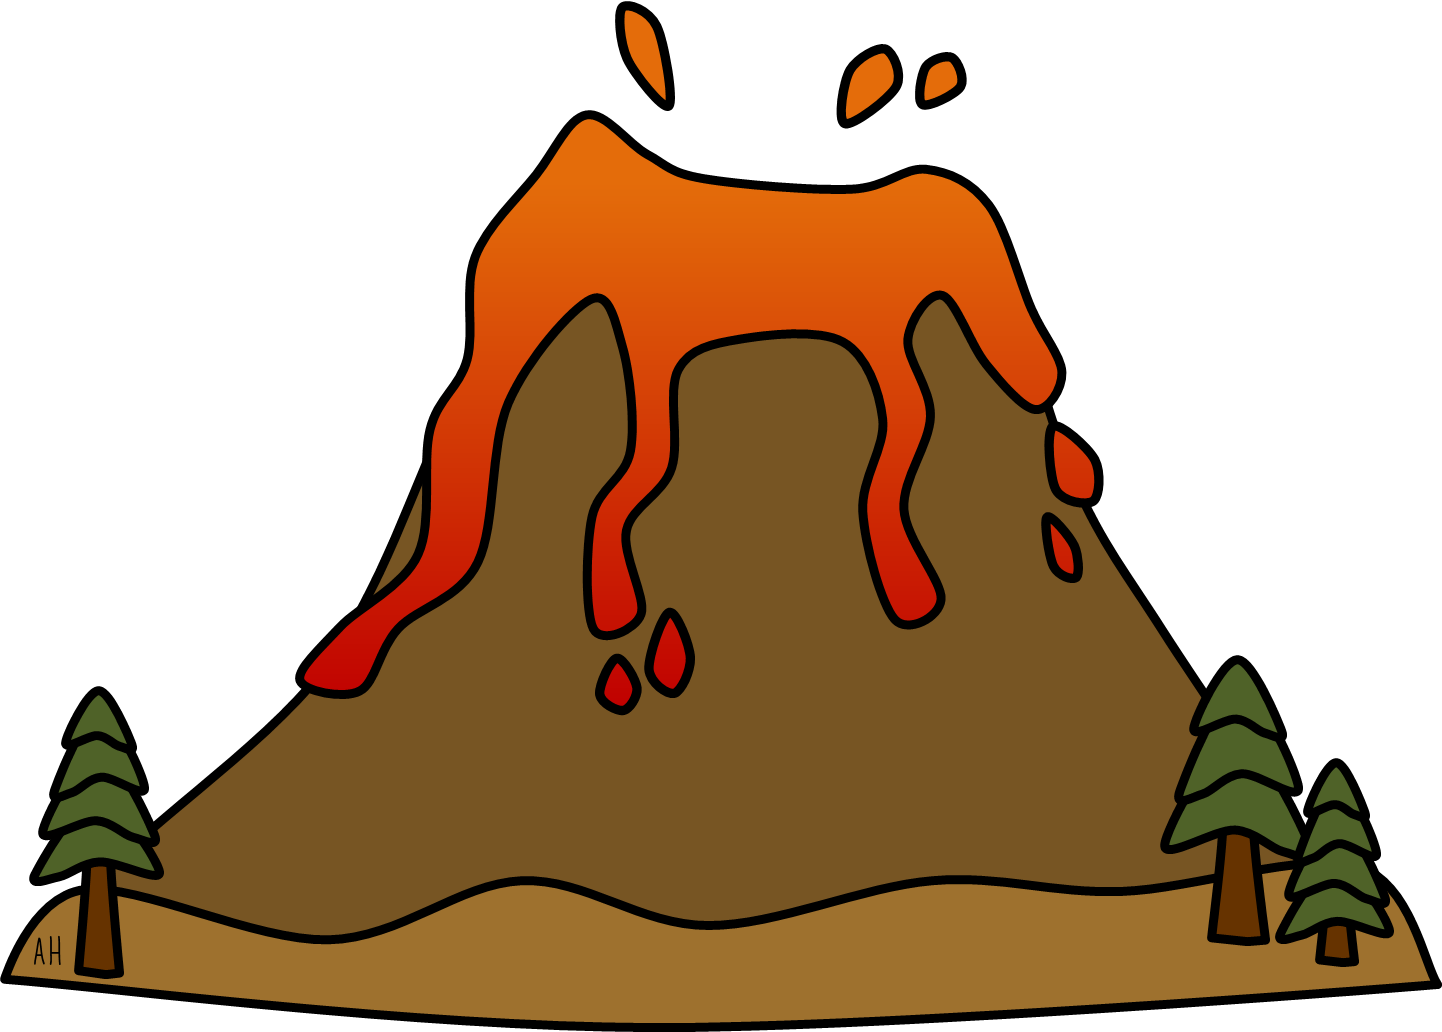 Volcano clip art free clipart images 2